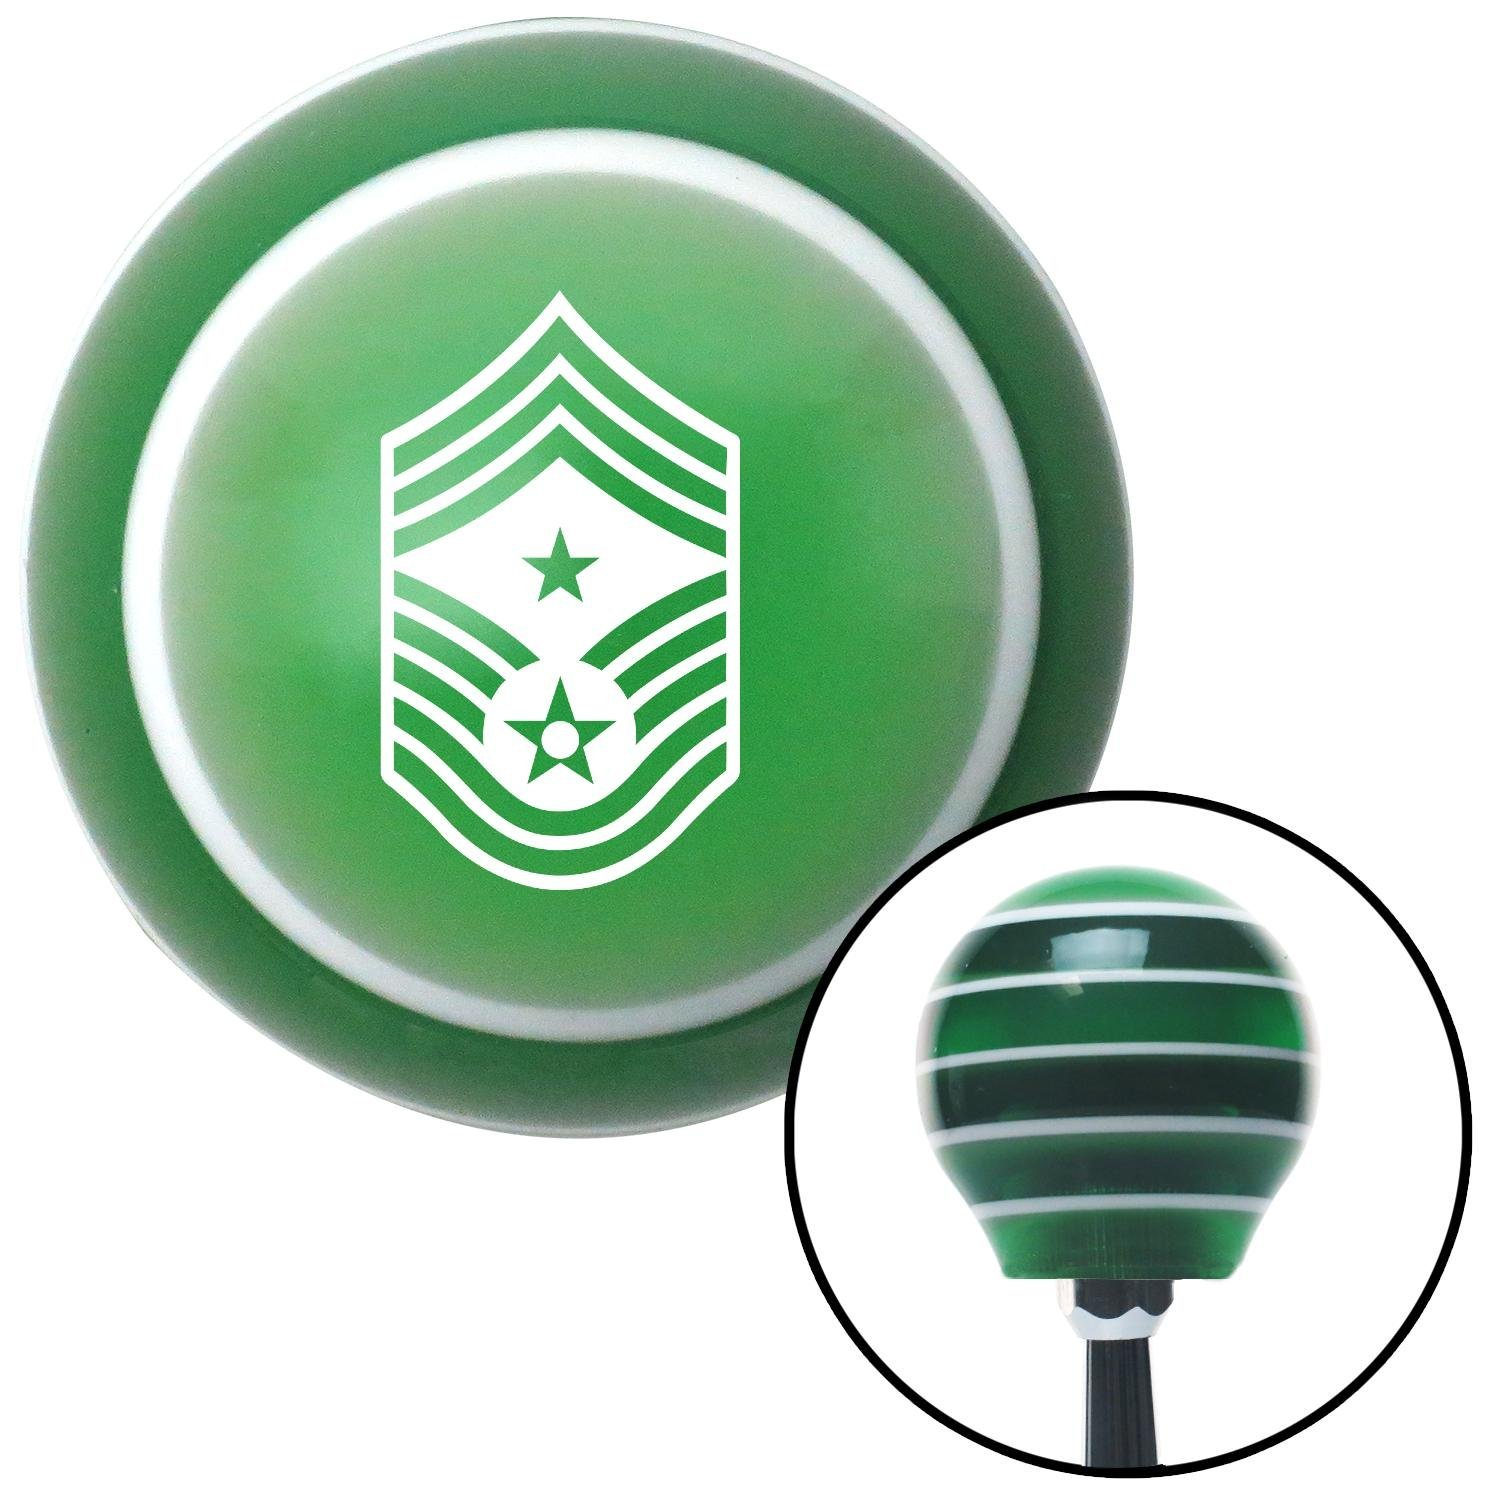 American Shifter 124551 Green Stripe Shift Knob with M16 x 1.5 Insert White Command Chief Master Sergeant